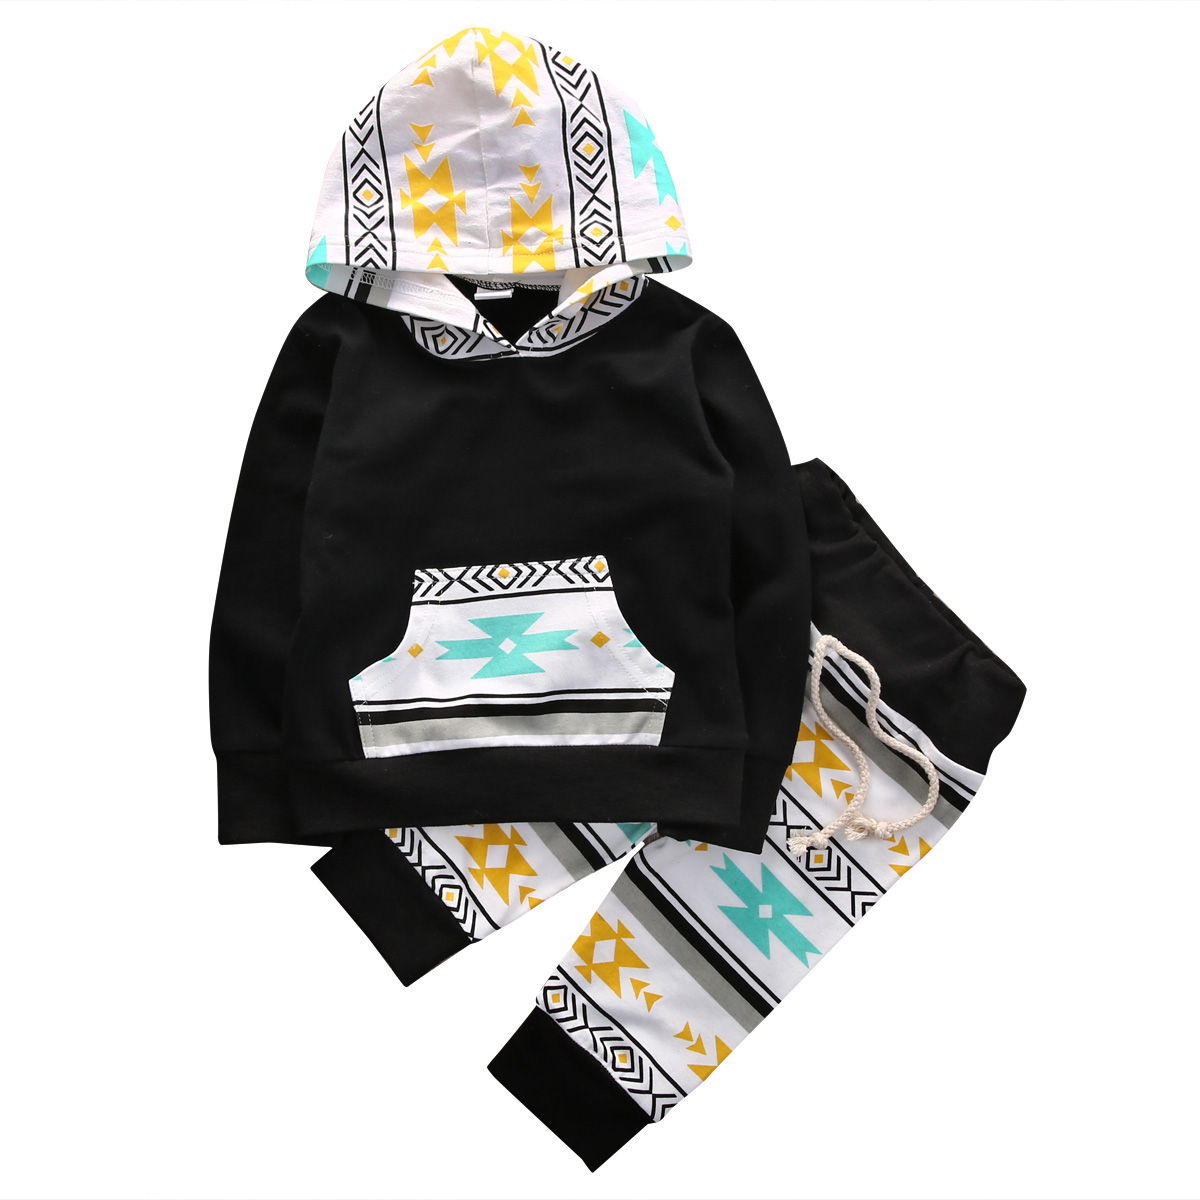 New Style Fashion Casual Toddler Baby Boy Girls Clothes 2PCS Cotton Hooded Sweatshirt Long Sleeve Tops Pants Leggings Outfit Set hot 0 4y toddler baby boy girl clothes long sleeve hooded t shirt tops and striped pant 2pcs outfit kids clothing set tracksuit